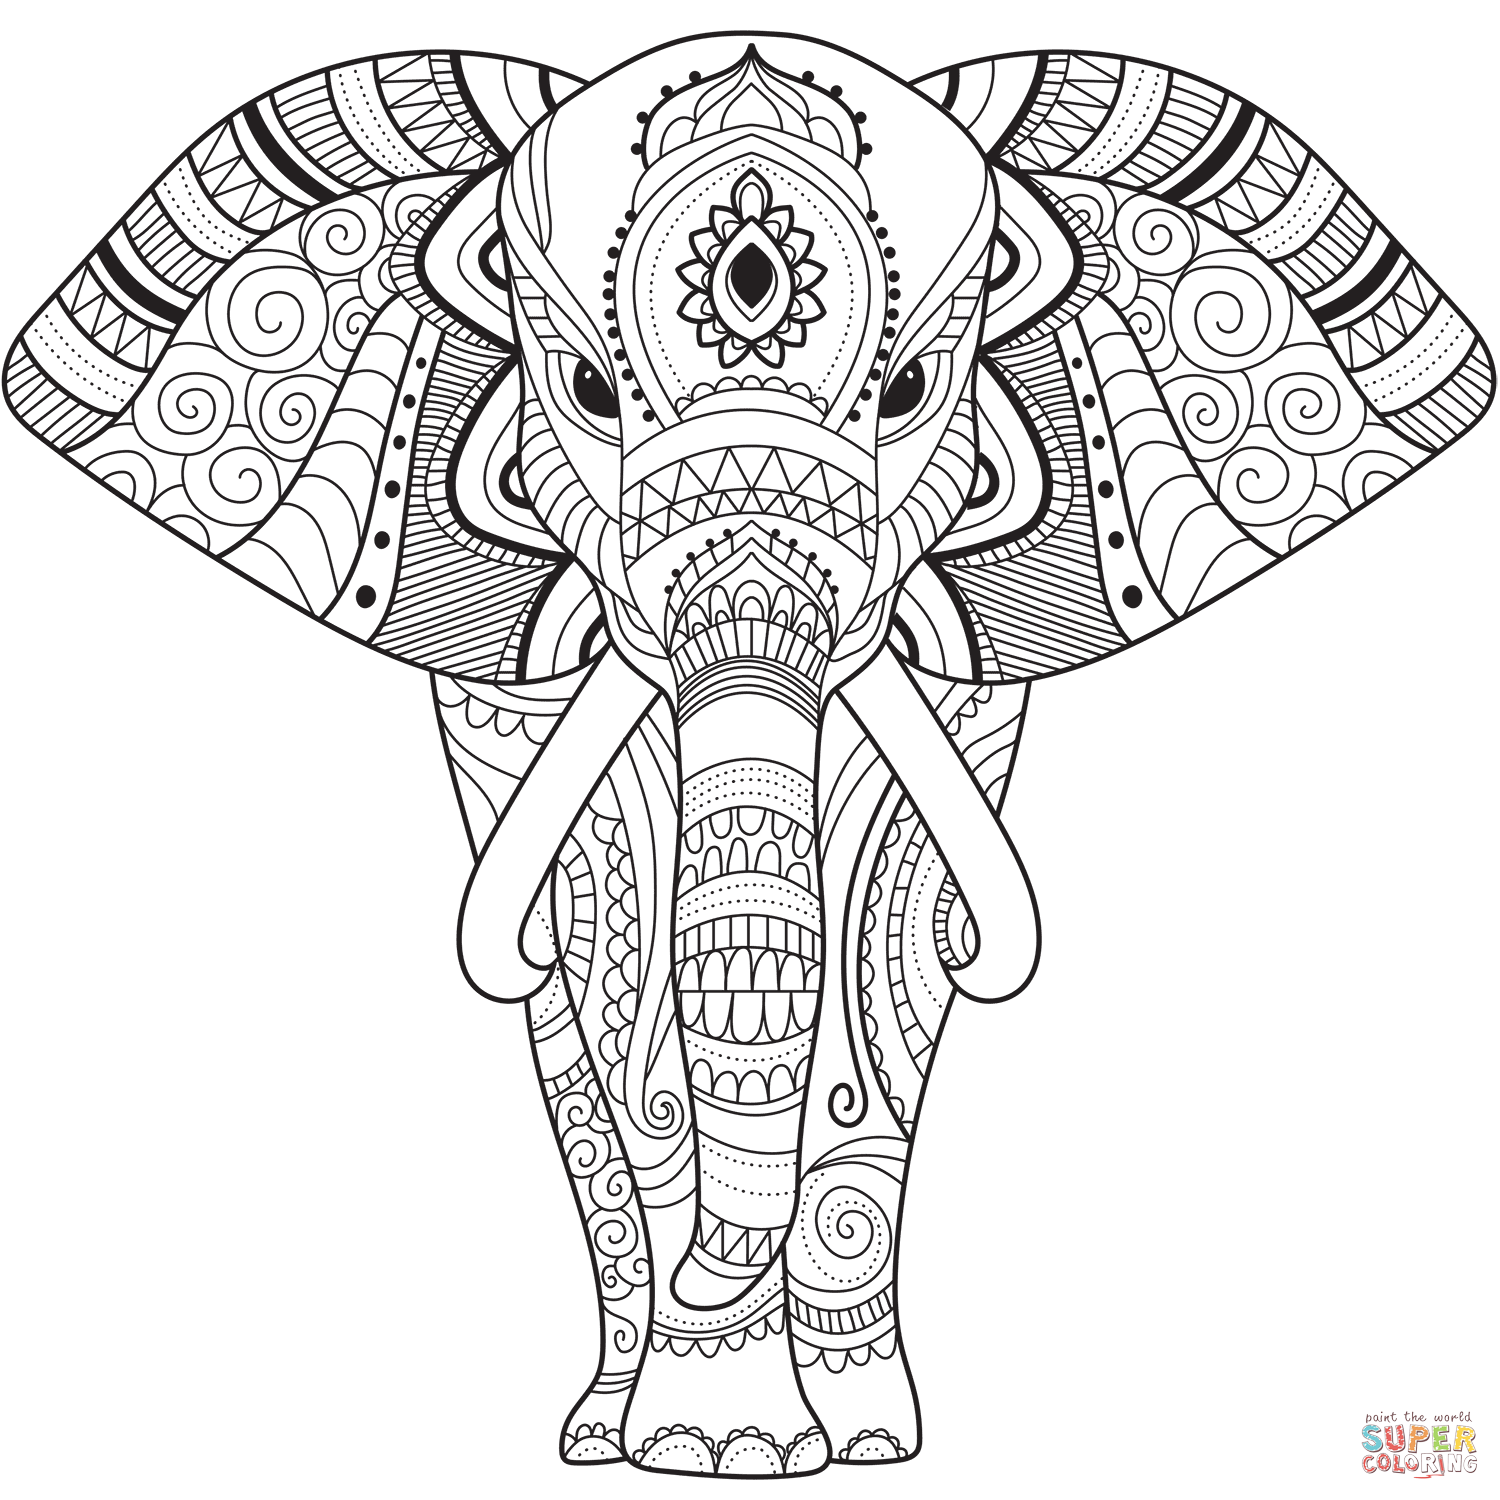 coloring book ~ Easy Coloring Pages For Seniors Printable Hairs Of ... | 1500x1500